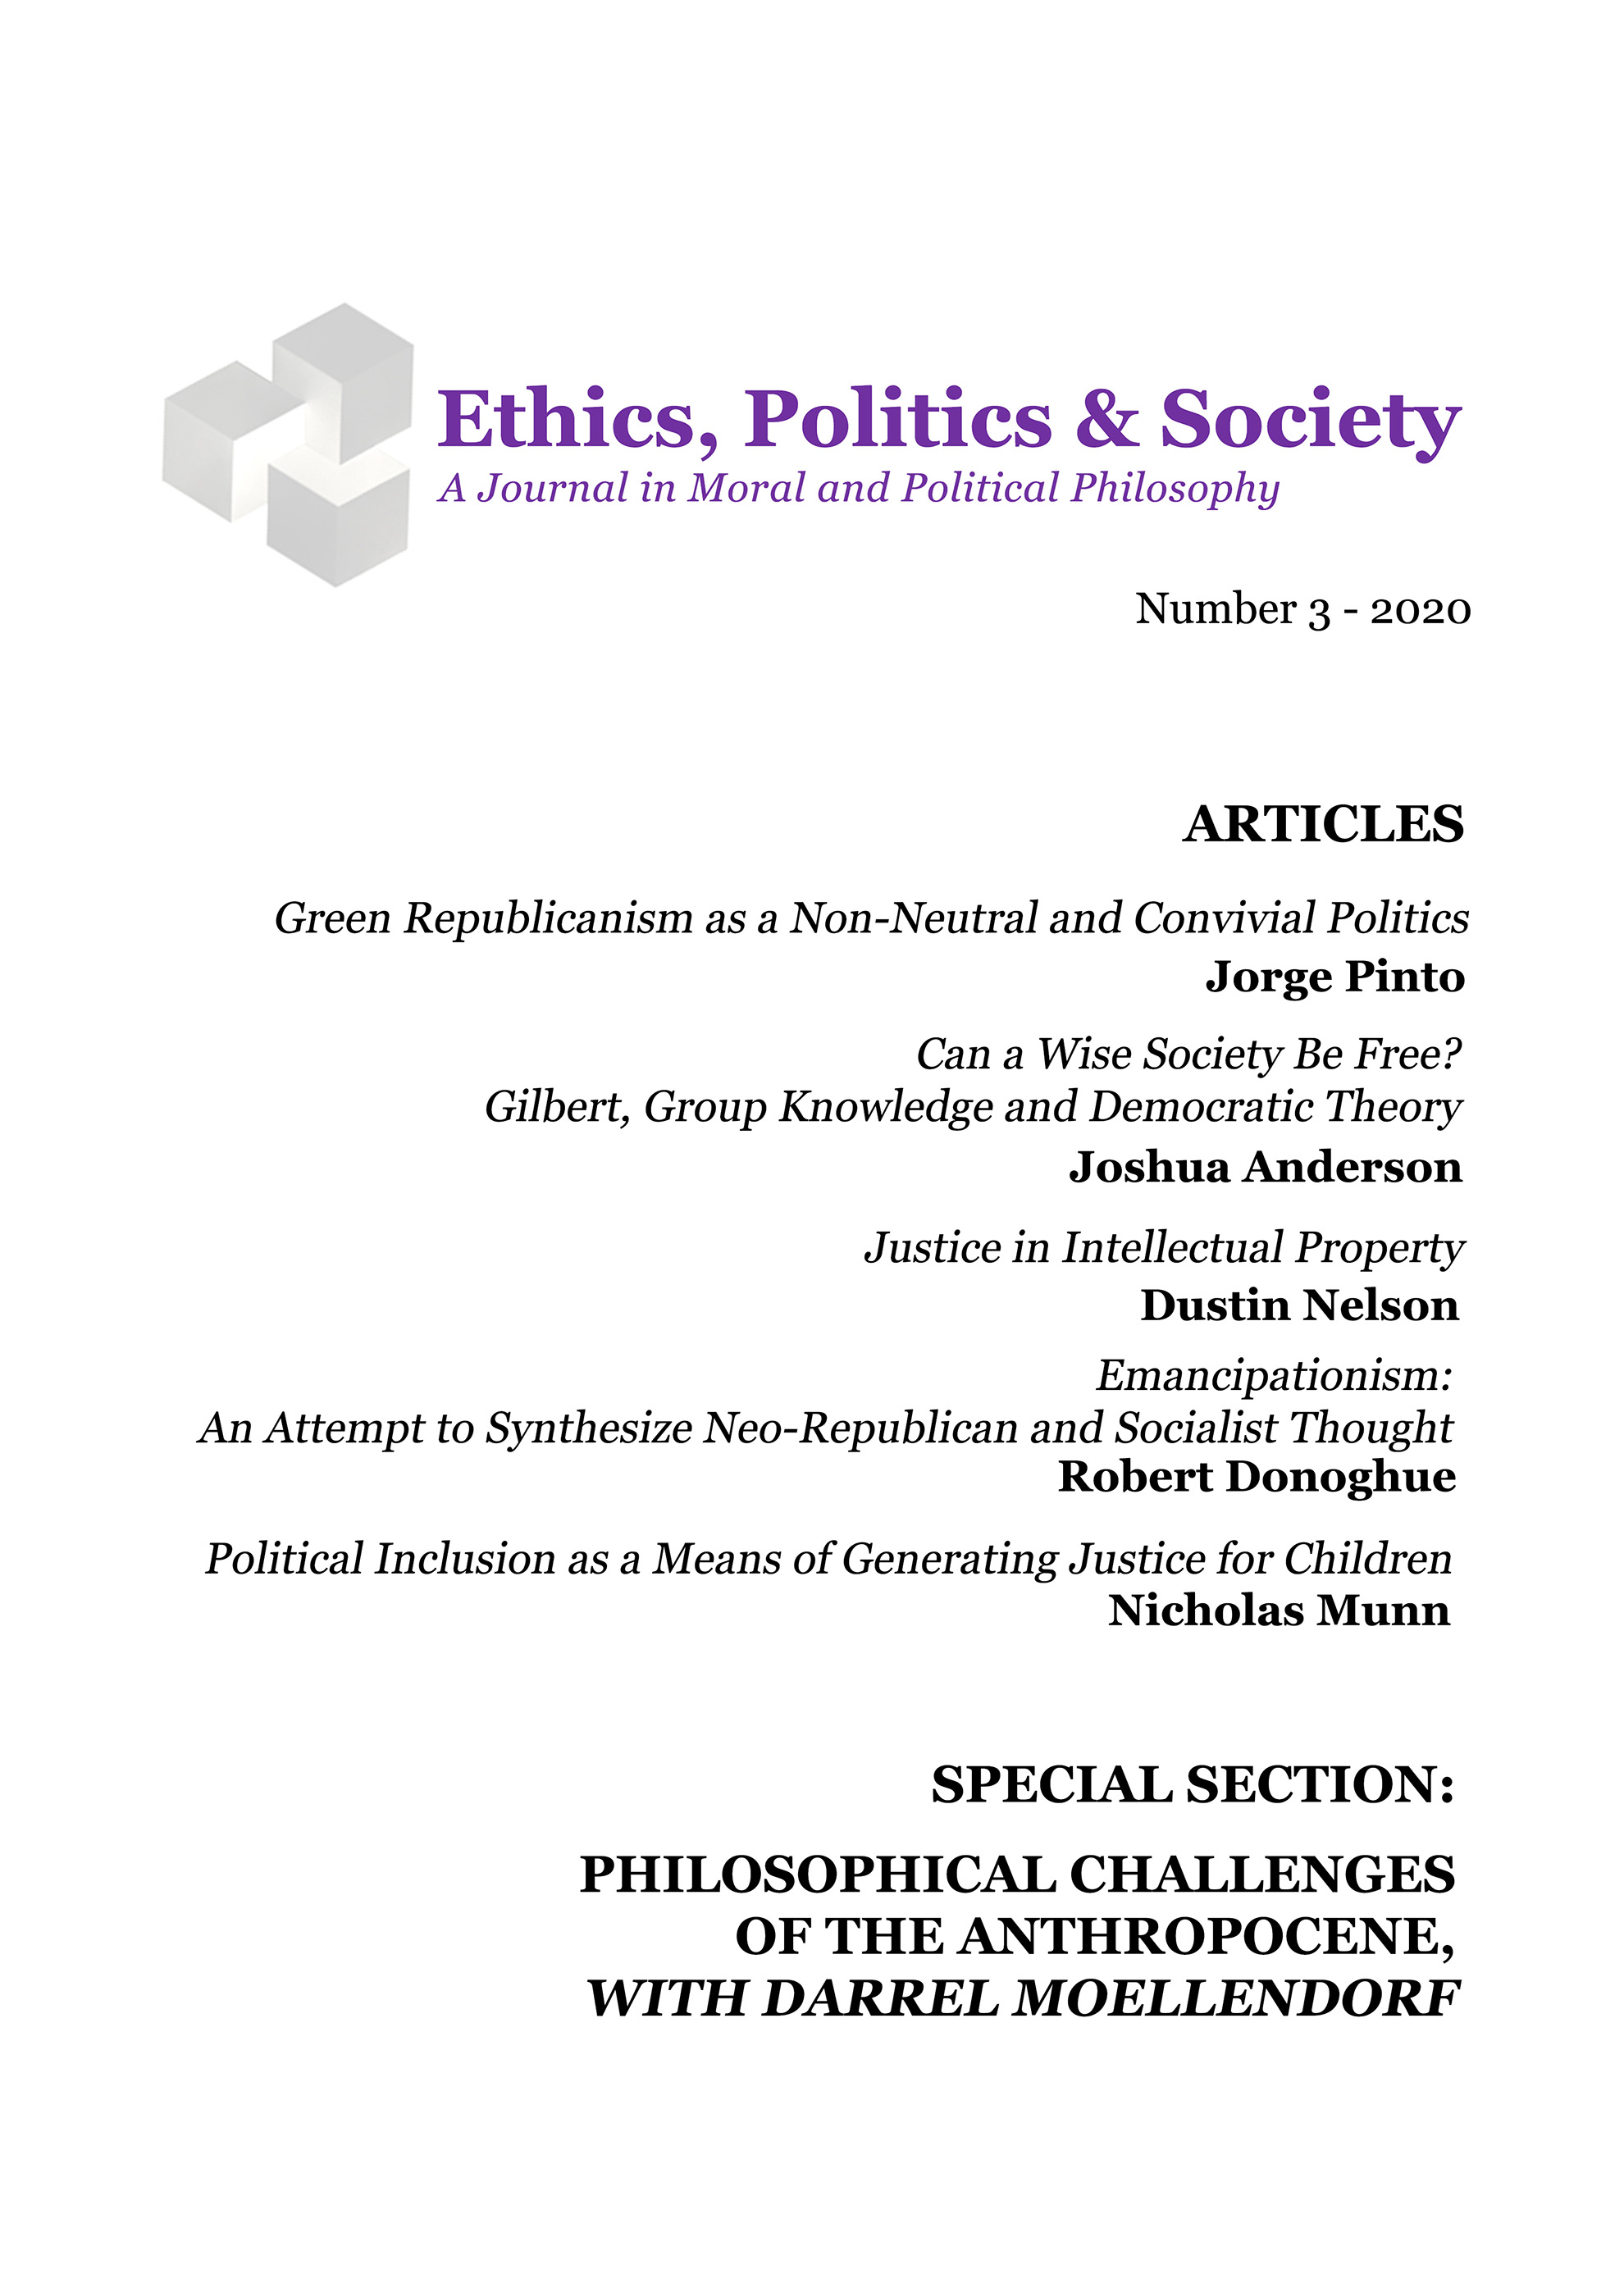 View Vol. 3 (2020): Ethics, Politics & Society. A Journal in Moral and Political Philosophy